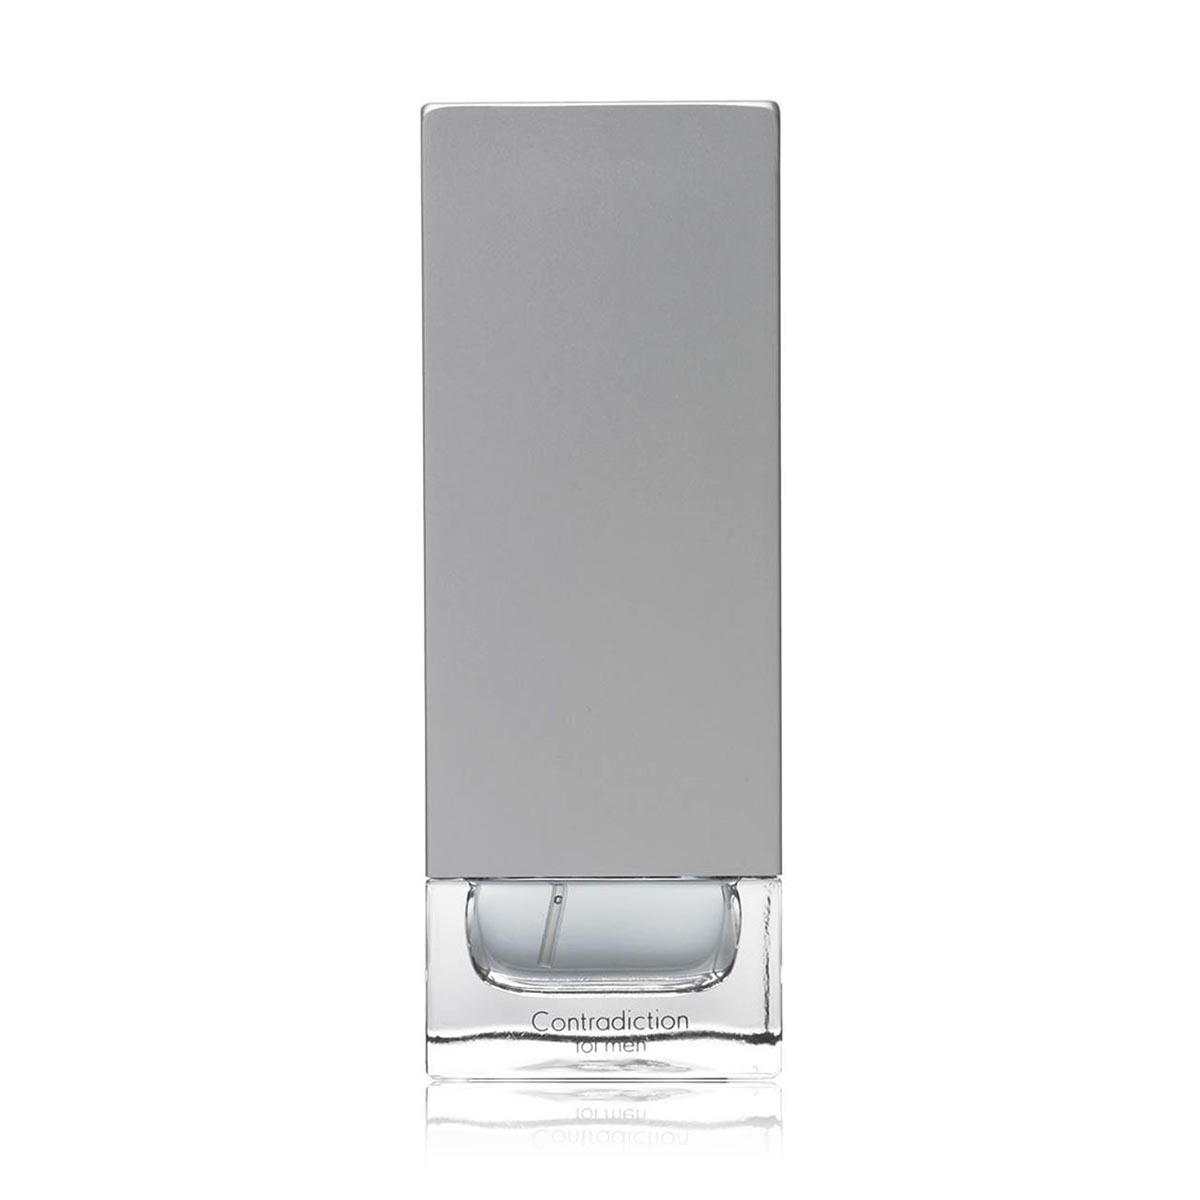 Calvin klein contradiction men eau de toilette 100ml vaporizador